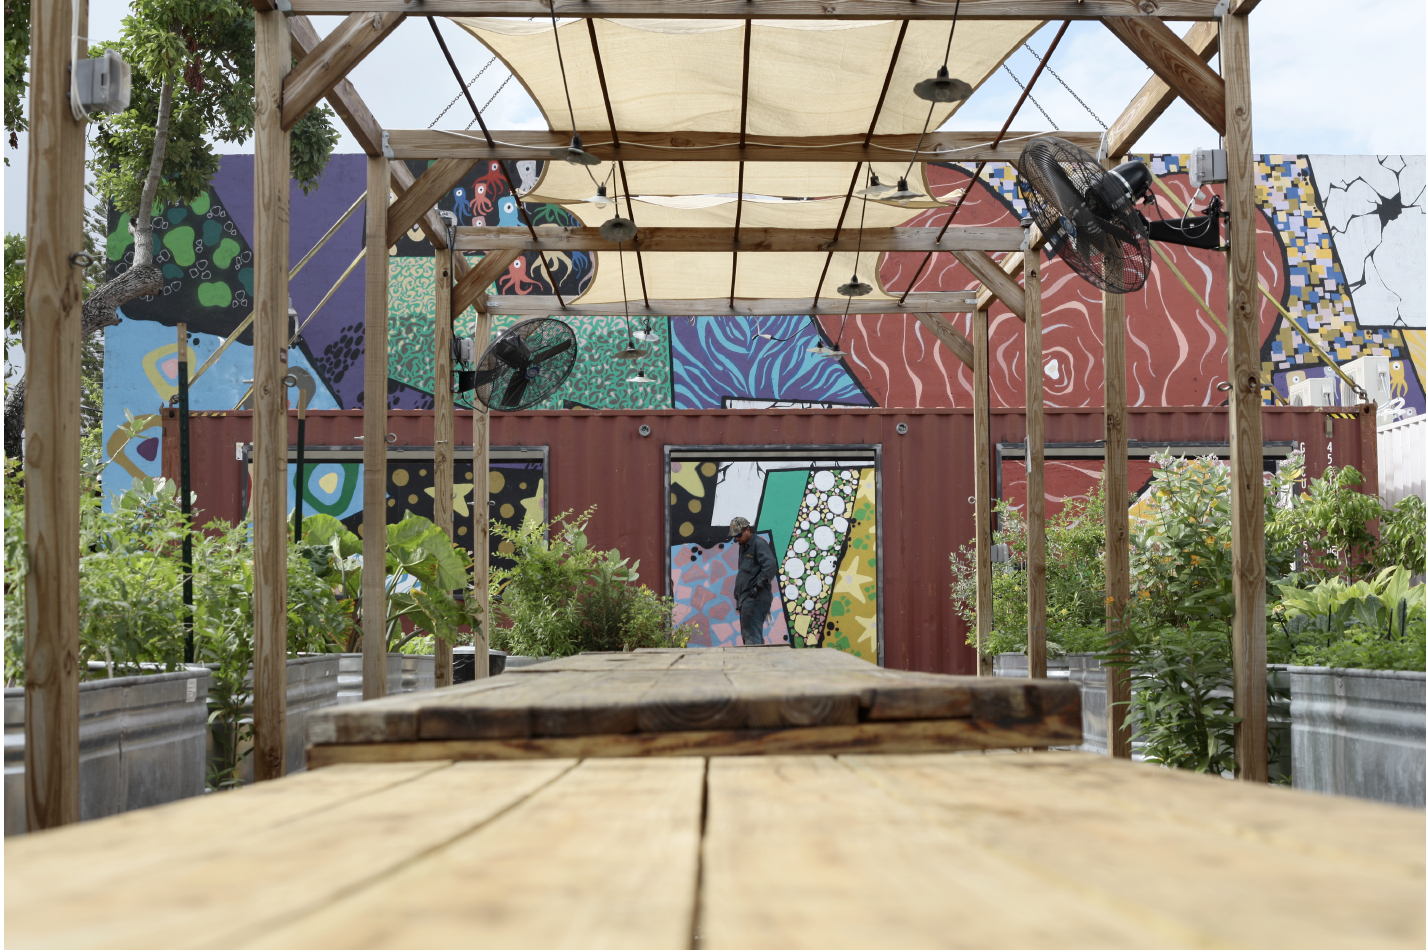 Framing for The Market provided by outdoor pergola at The Wynwood Yard.